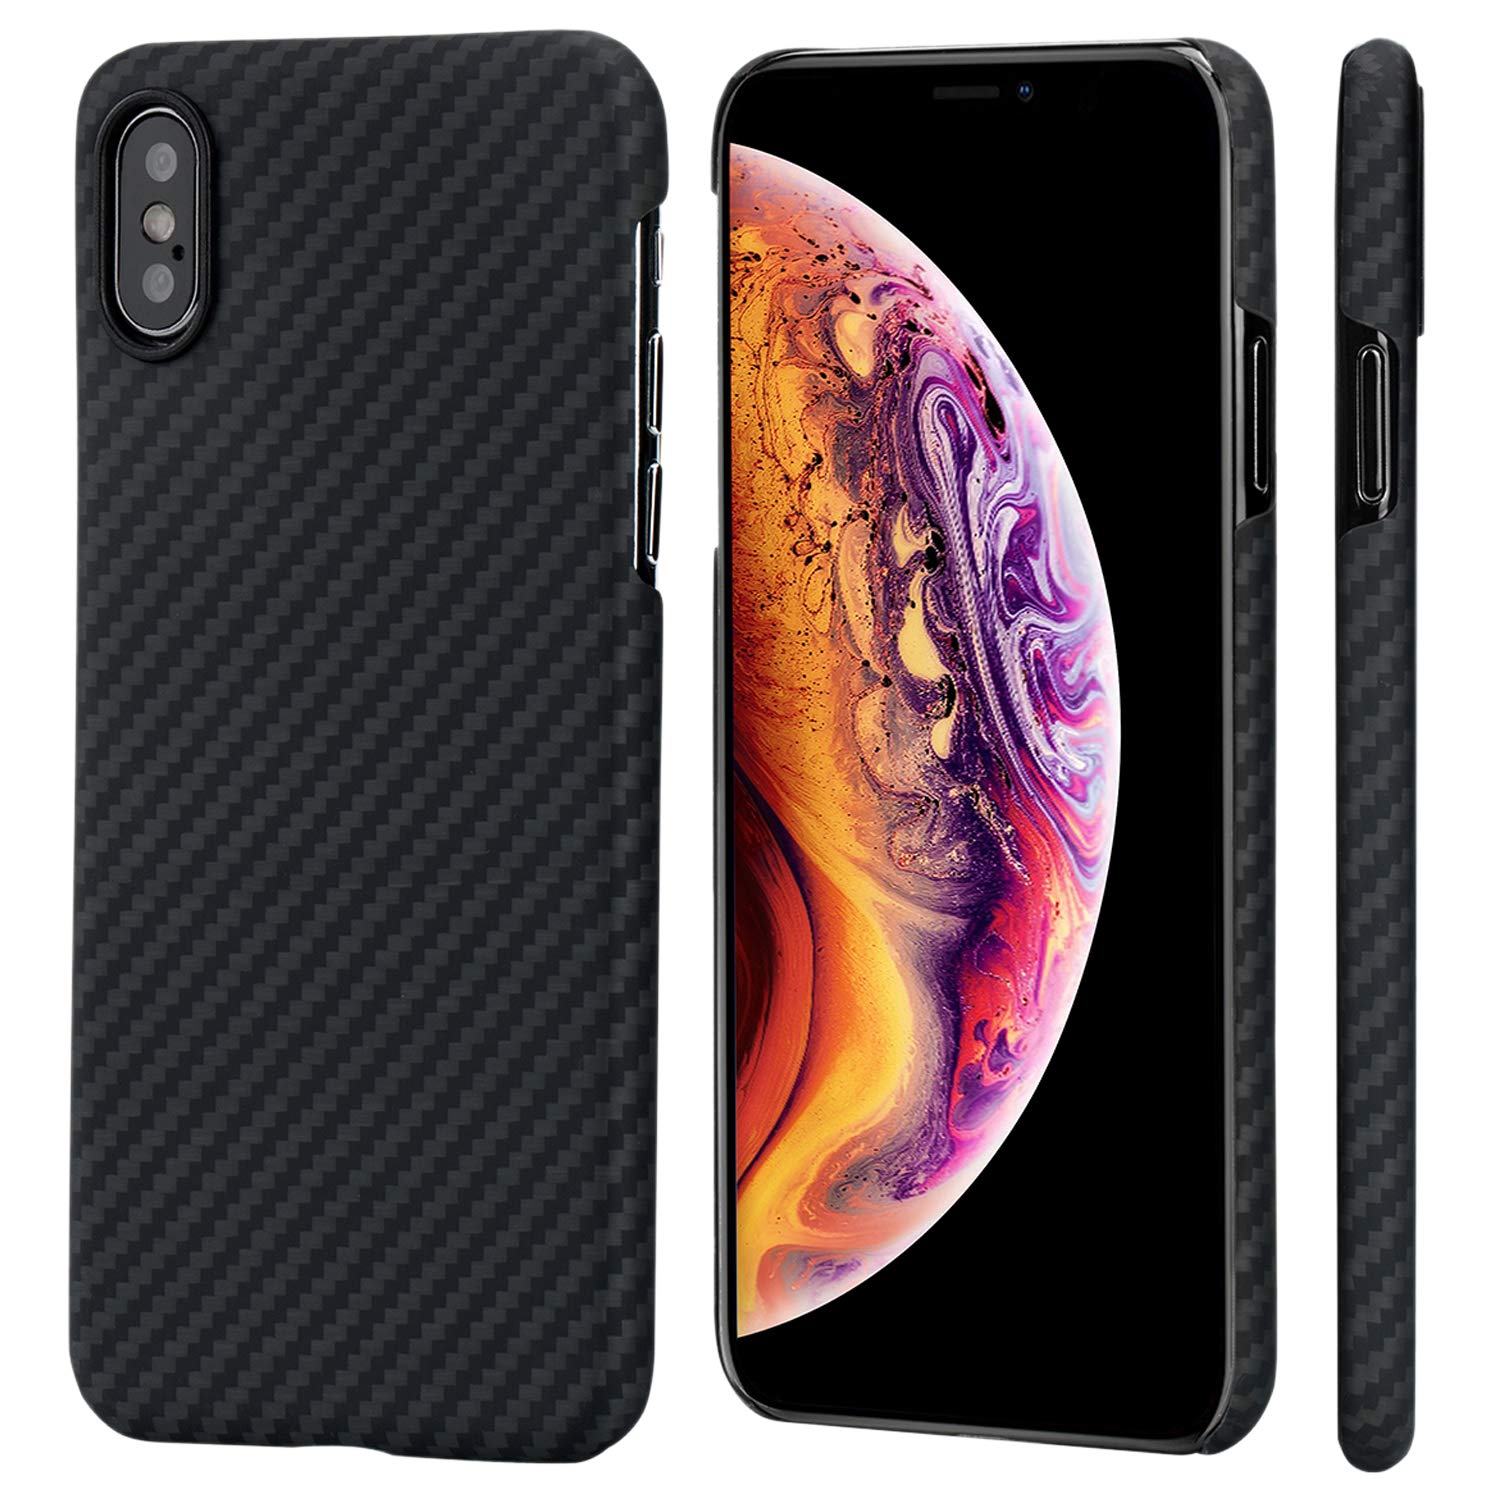 PITAKA Slim Case Compatible with iPhone Xs 5.8'', MagCase Aramid Fiber [Real Body Armor Material] Phone Case,Minimalist Strongest Durable Snugly Fit Snap-on Case - Black/Grey(Twill)